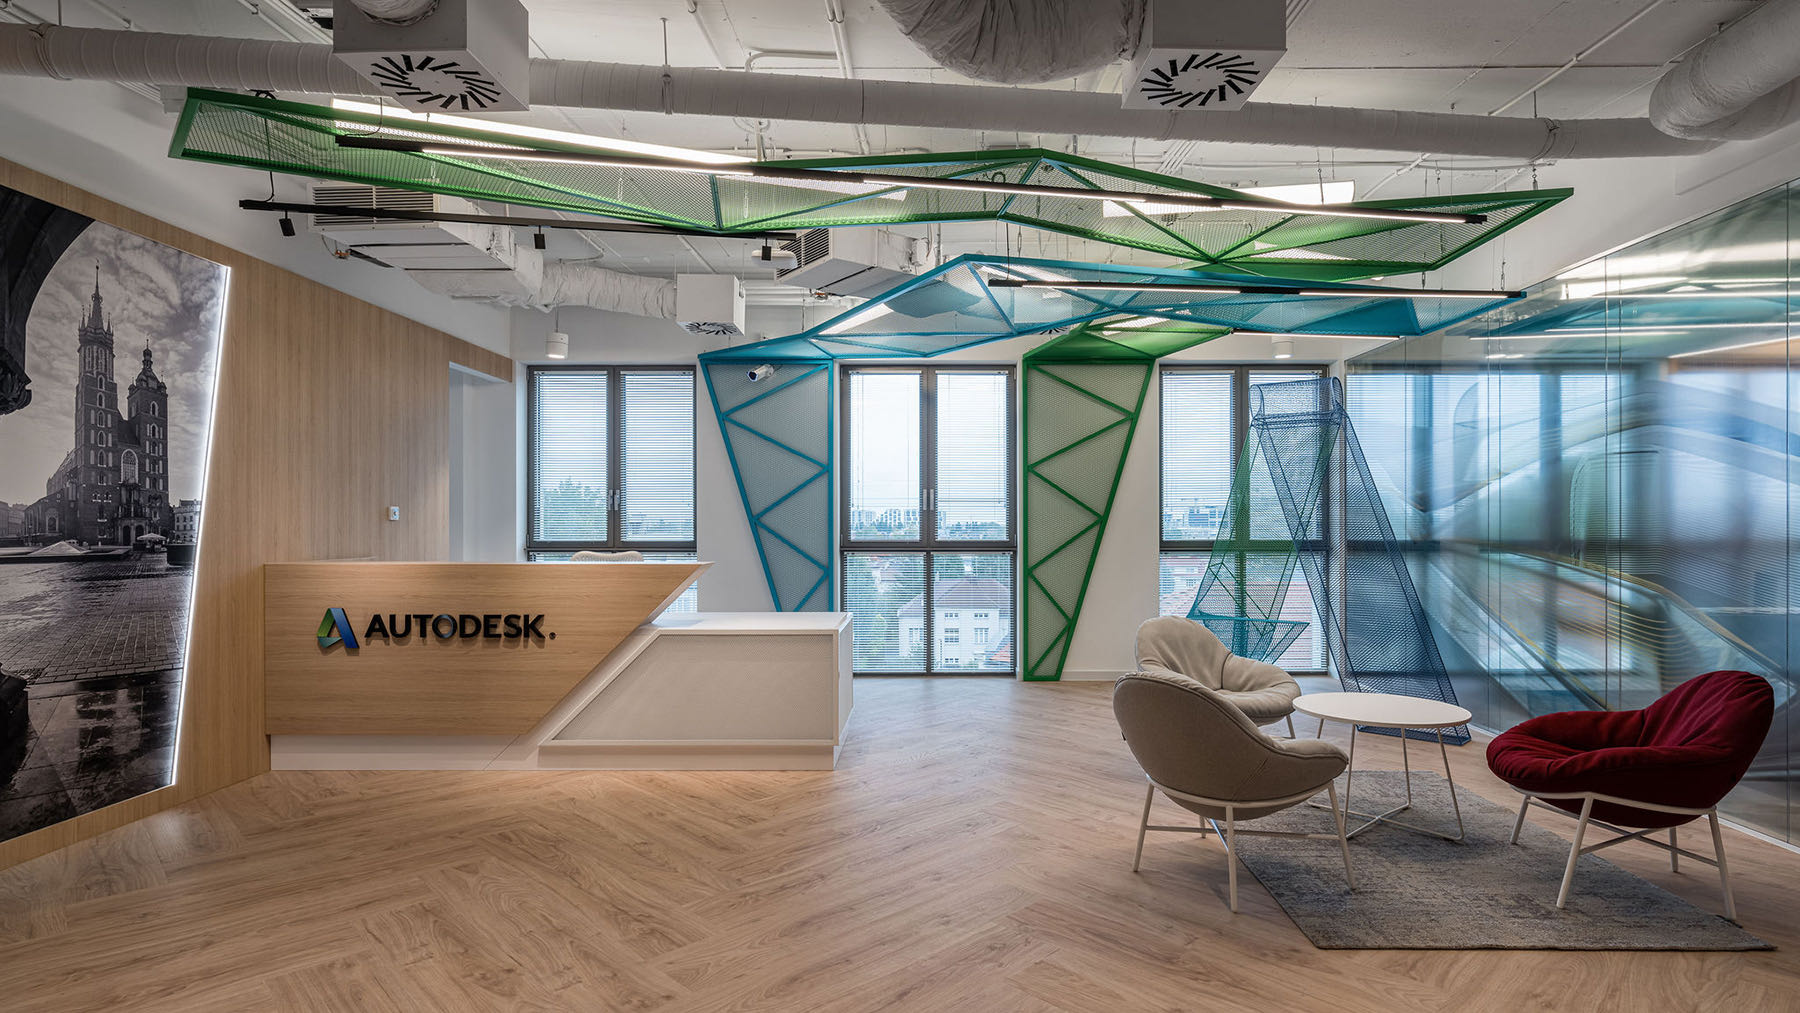 A Look Inside Autodesk's Sleek New Krakow Office